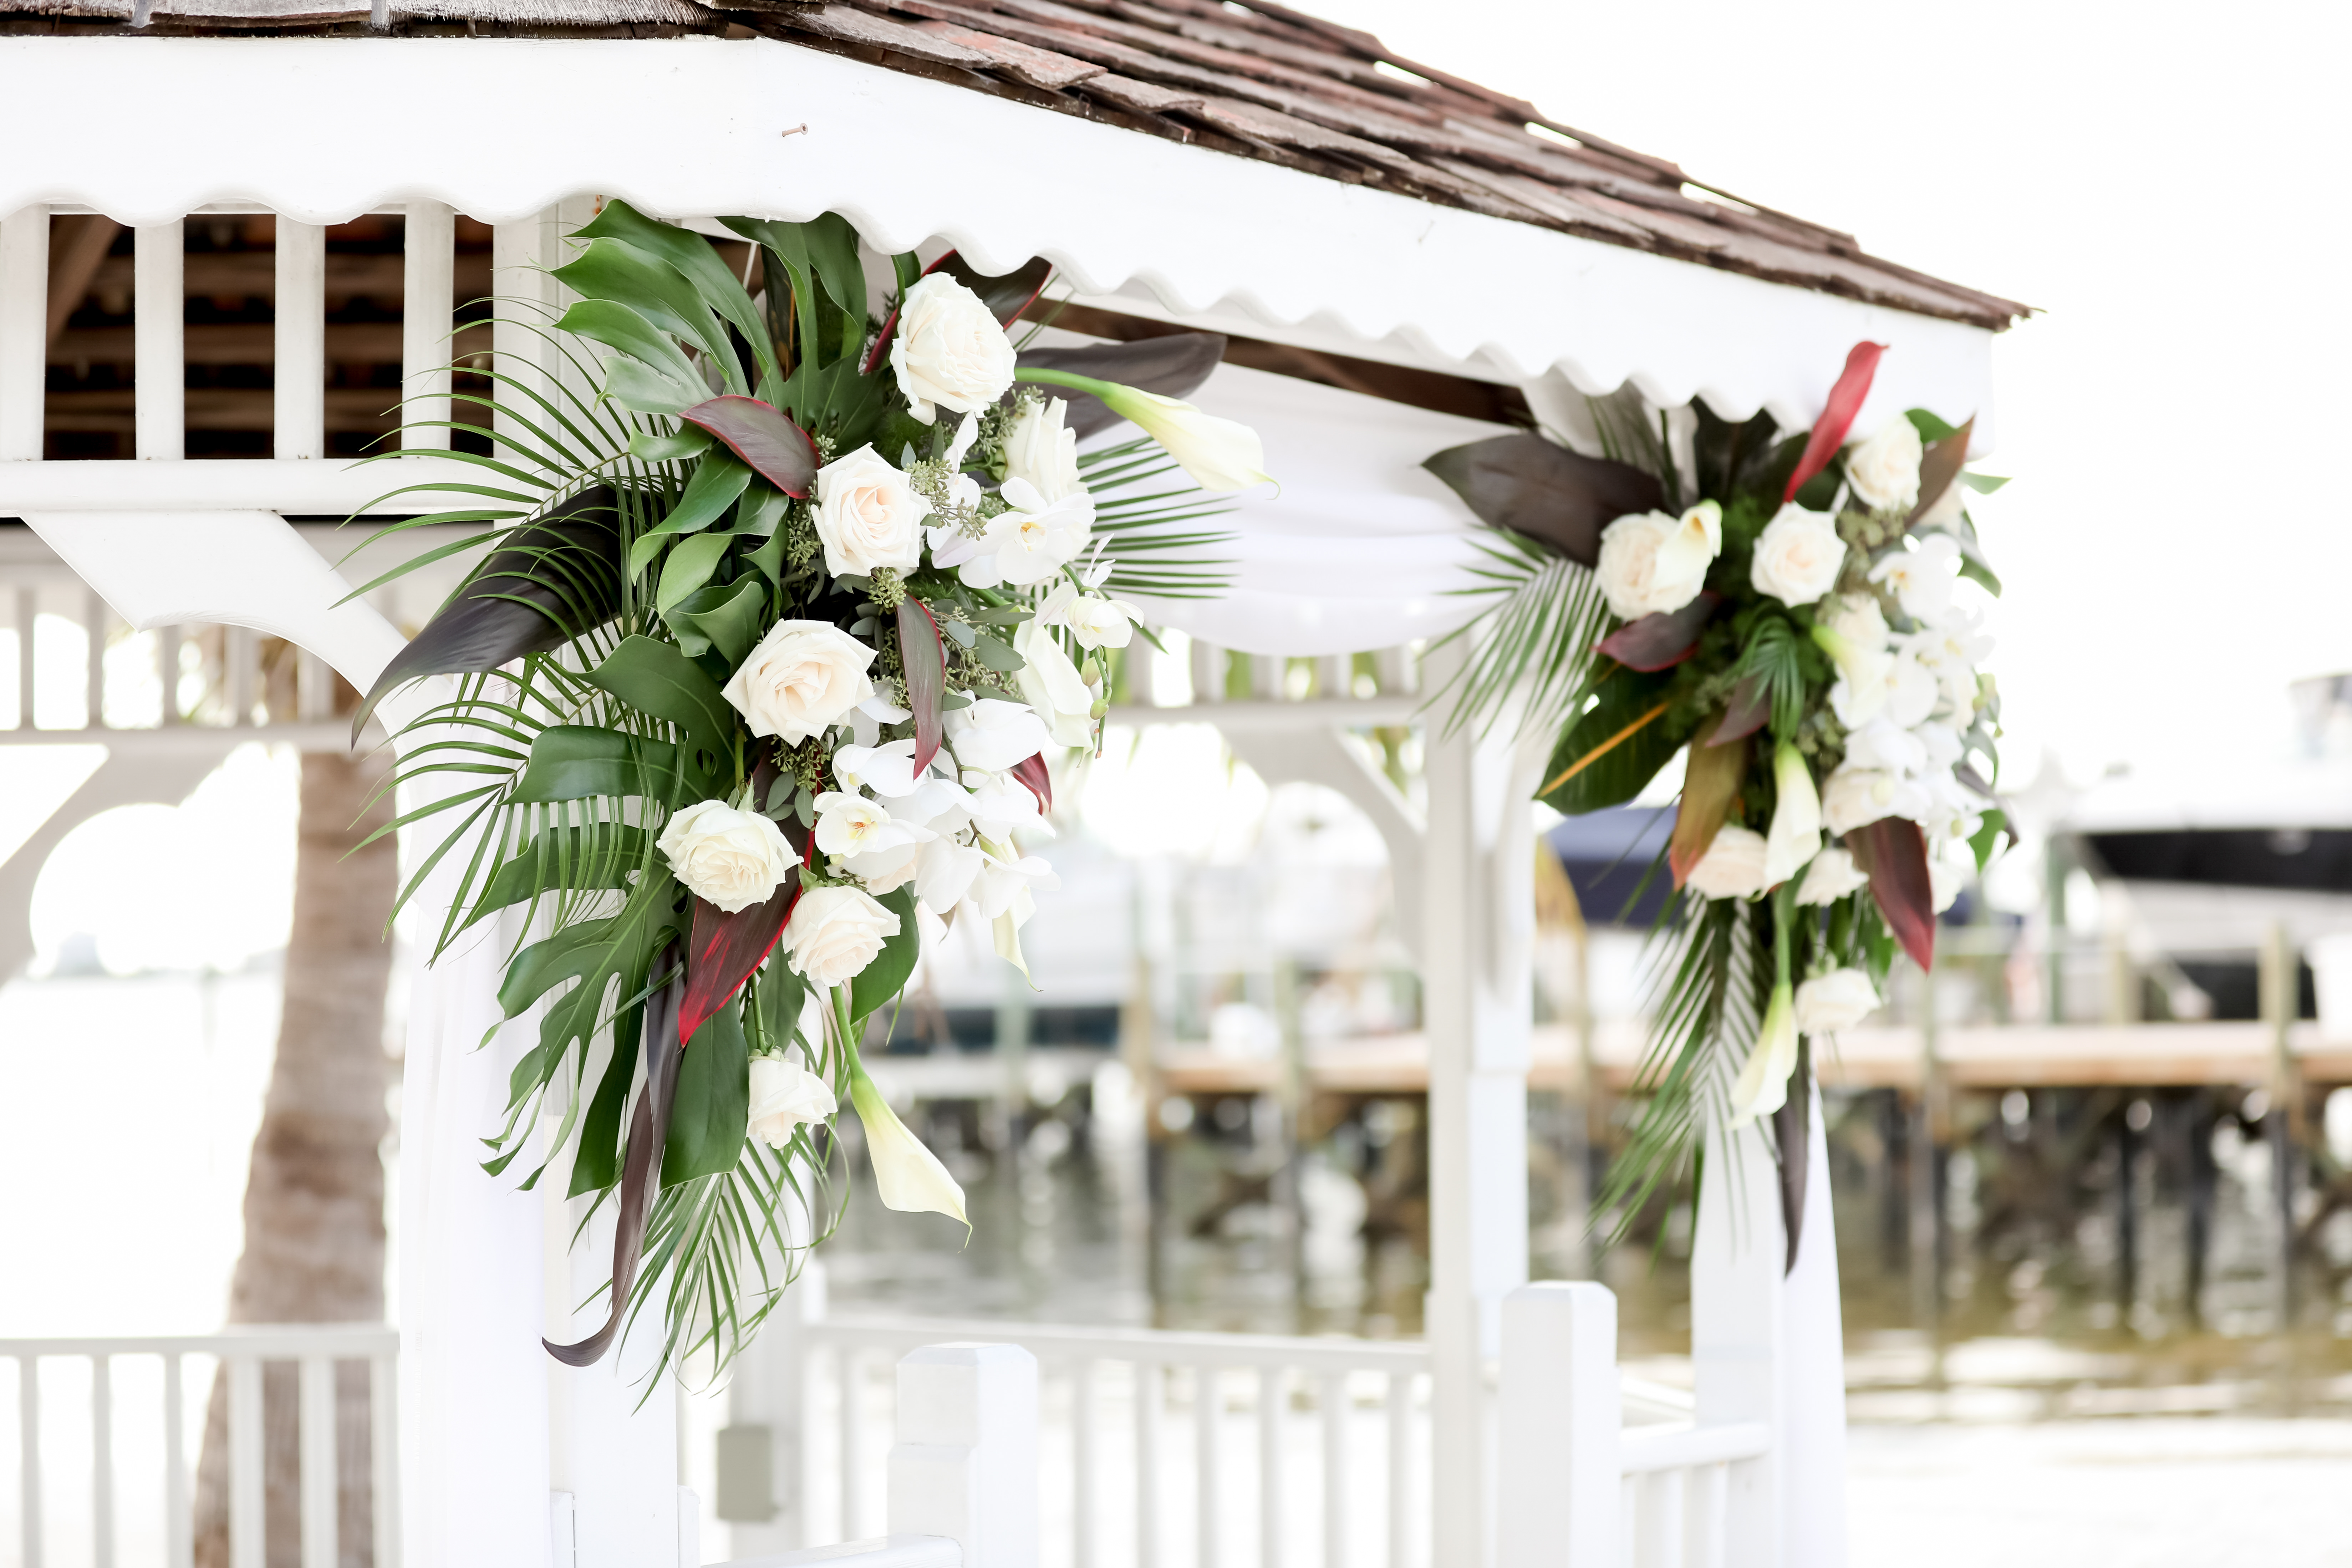 Beach Elegant Inspired Wedding Ceremony Decor, Outdoor Beach Wedding Ceremony at Gazebo with Colorful Tropical Floral Bouquets | Waterfront St. Petersburg Venue Isla Del Sol Yacht and Country Club | Photographer LifeLong Photography Studios